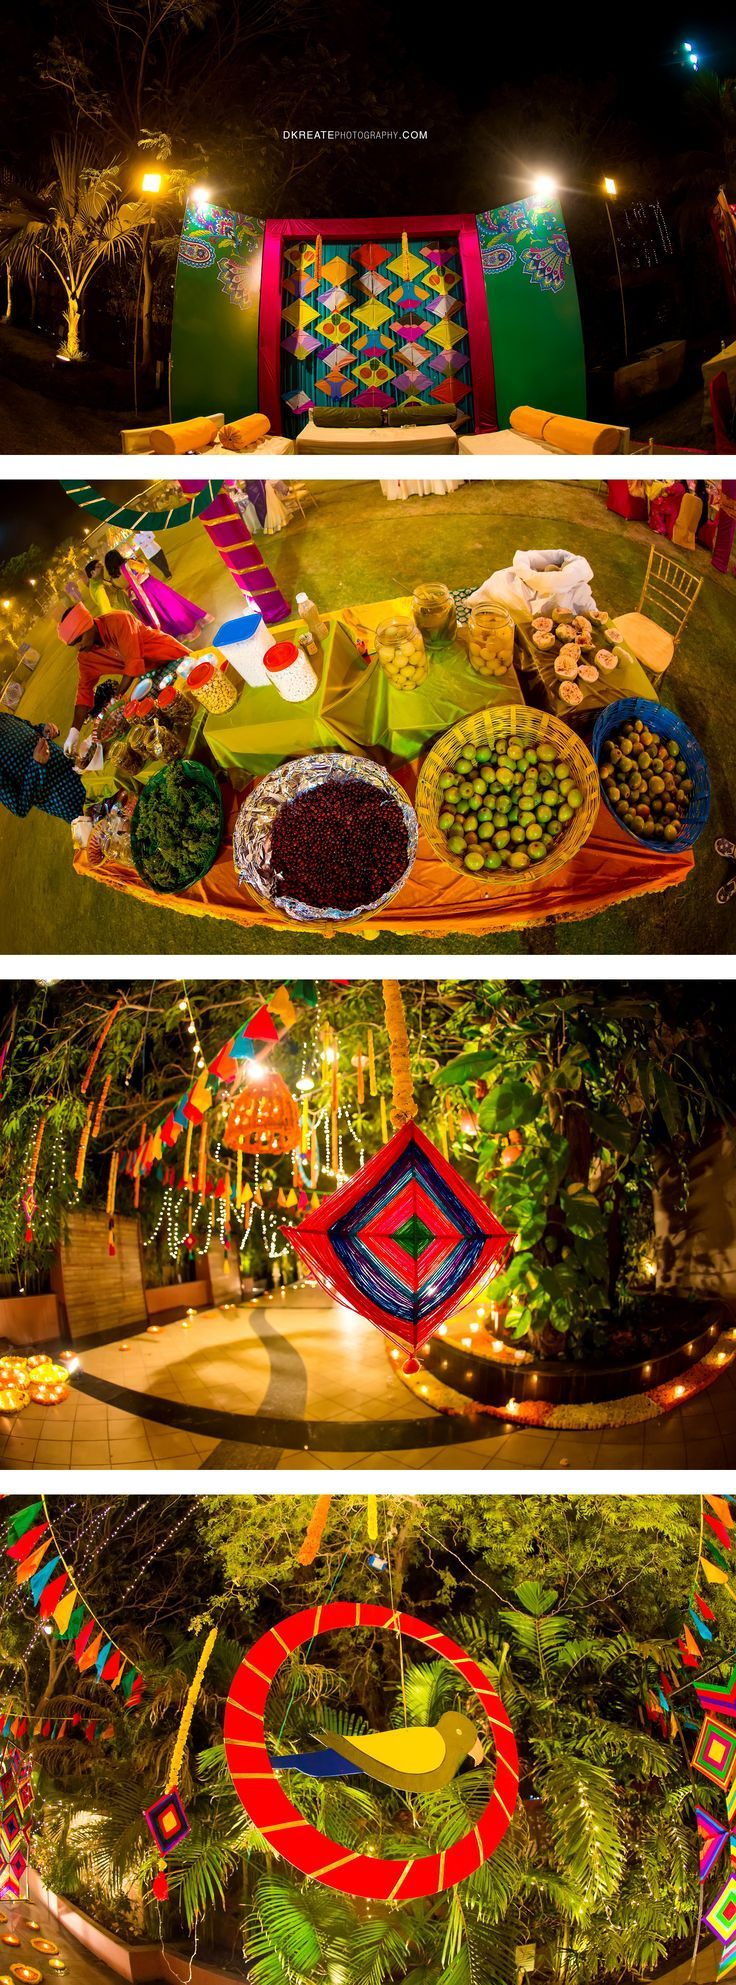 Indian wedding backdrop ideas. Colorful. Mela themed. Colorful woollen thread hanging for the wedding. Mehndi decor. Vibrant and thela for rajasthani theme. Indian street food